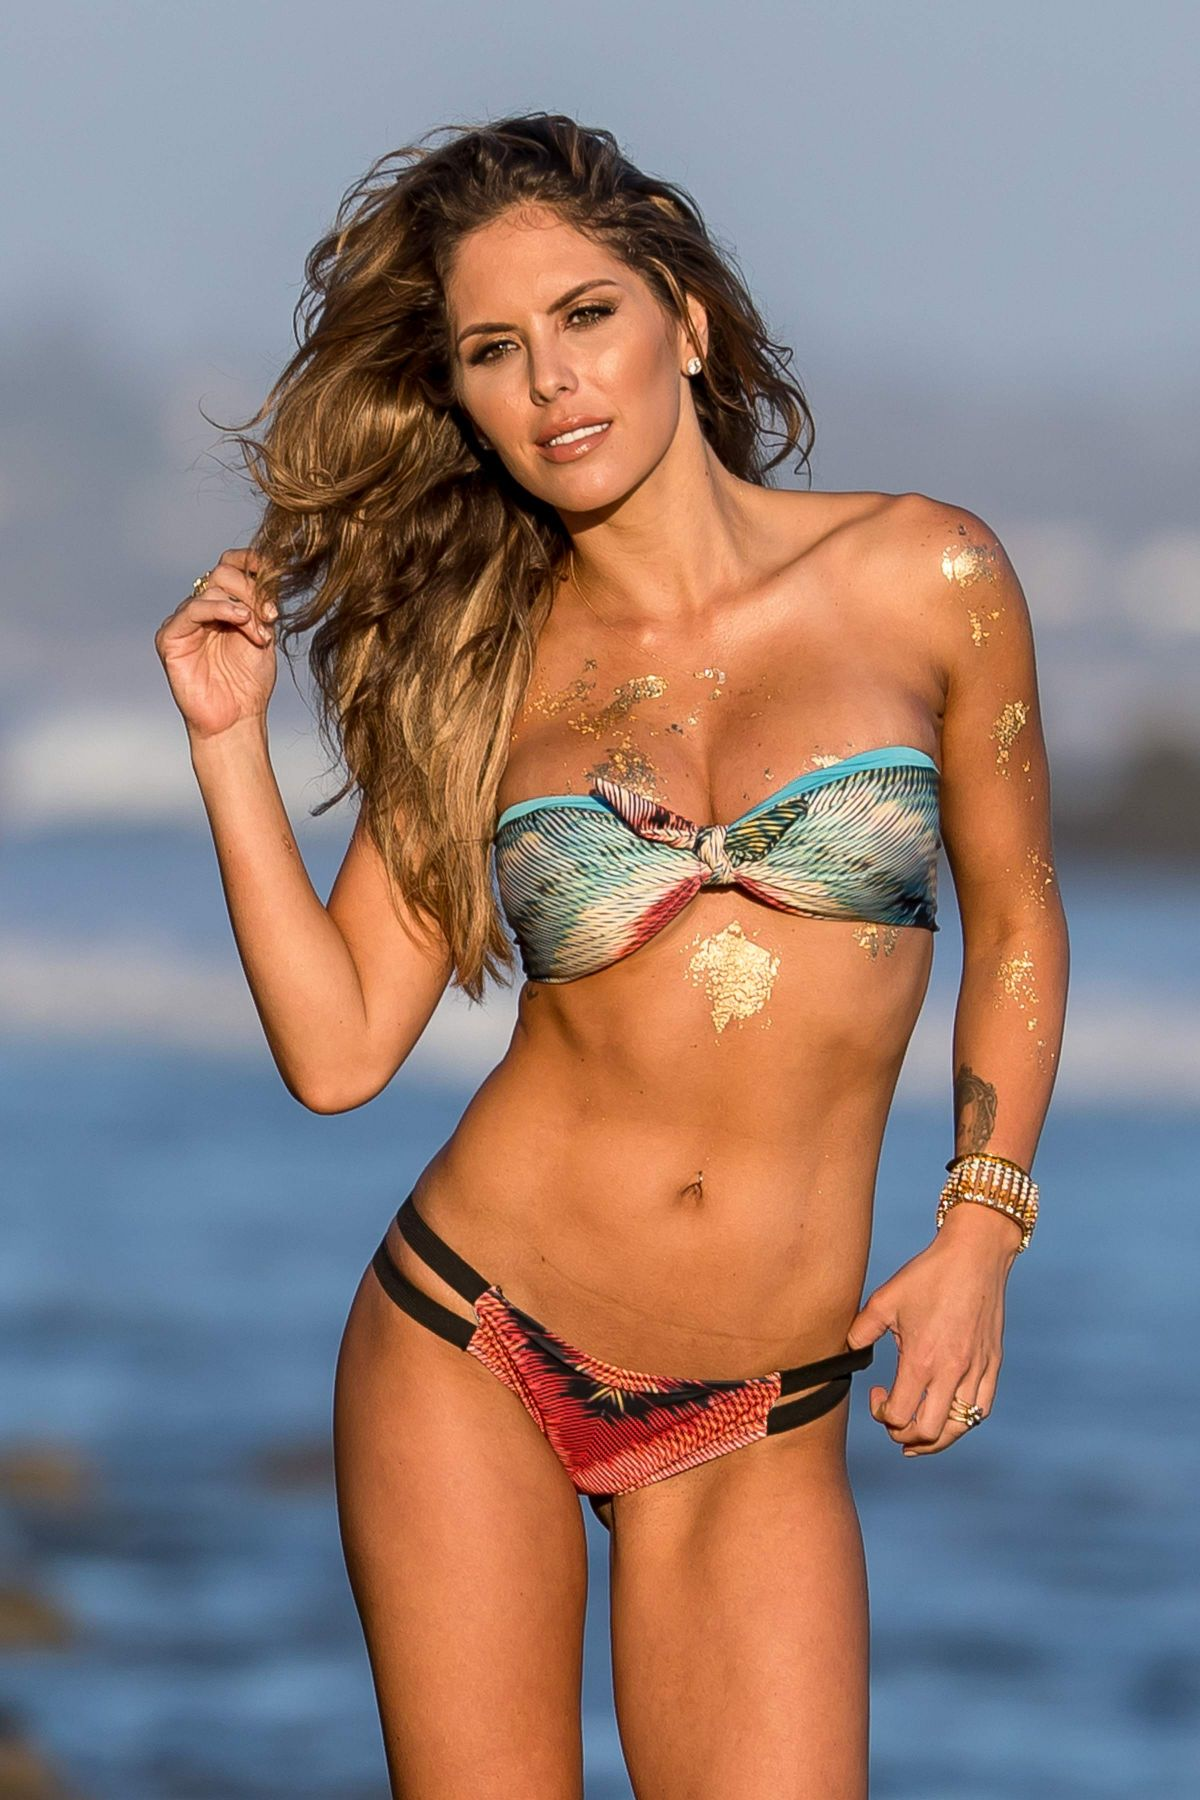 Paparazzi Brittney Palmer nudes (58 foto and video), Topless, Hot, Instagram, cameltoe 2015